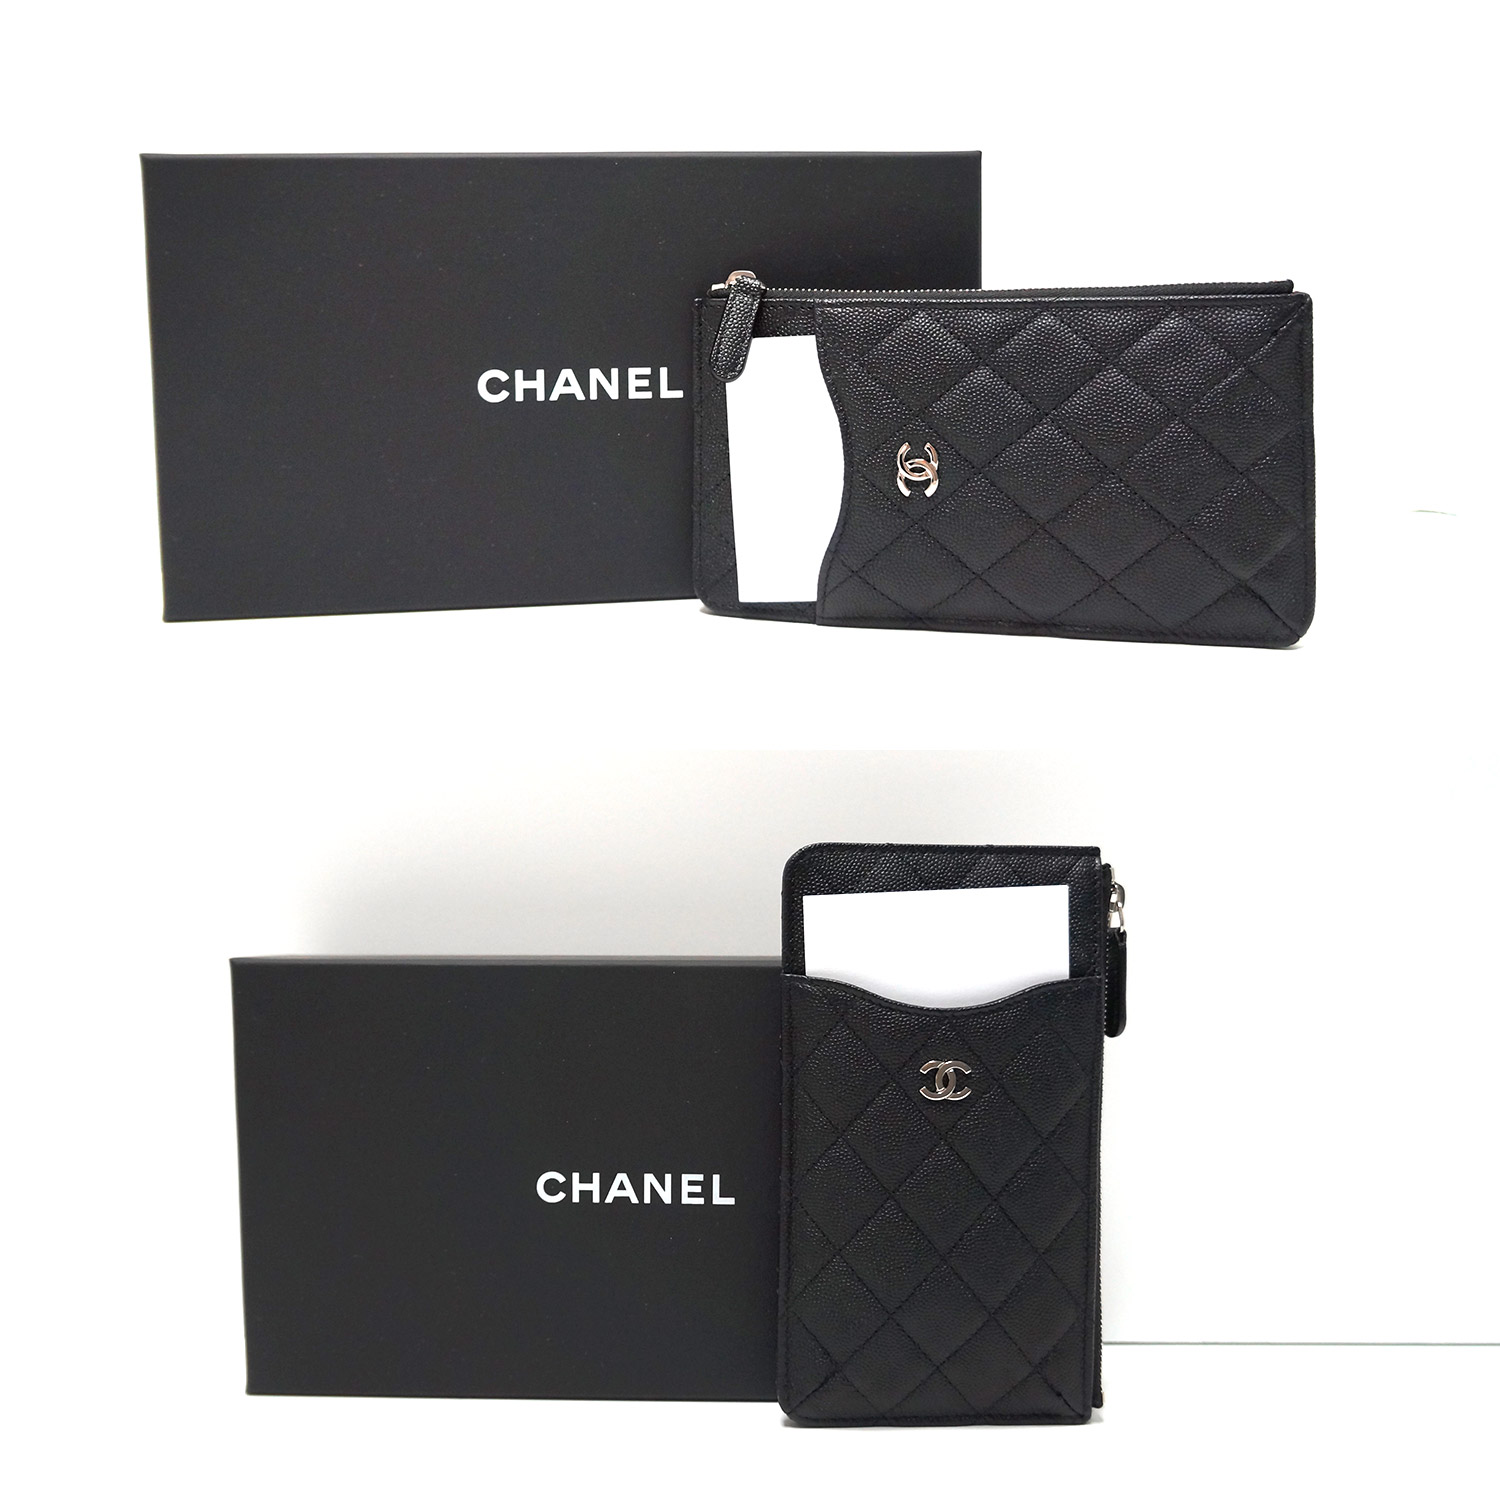 acf9401bf0a3 Chanel Classic Quilted Black Caviar Leather Flat Wallet Phone Pouch ...